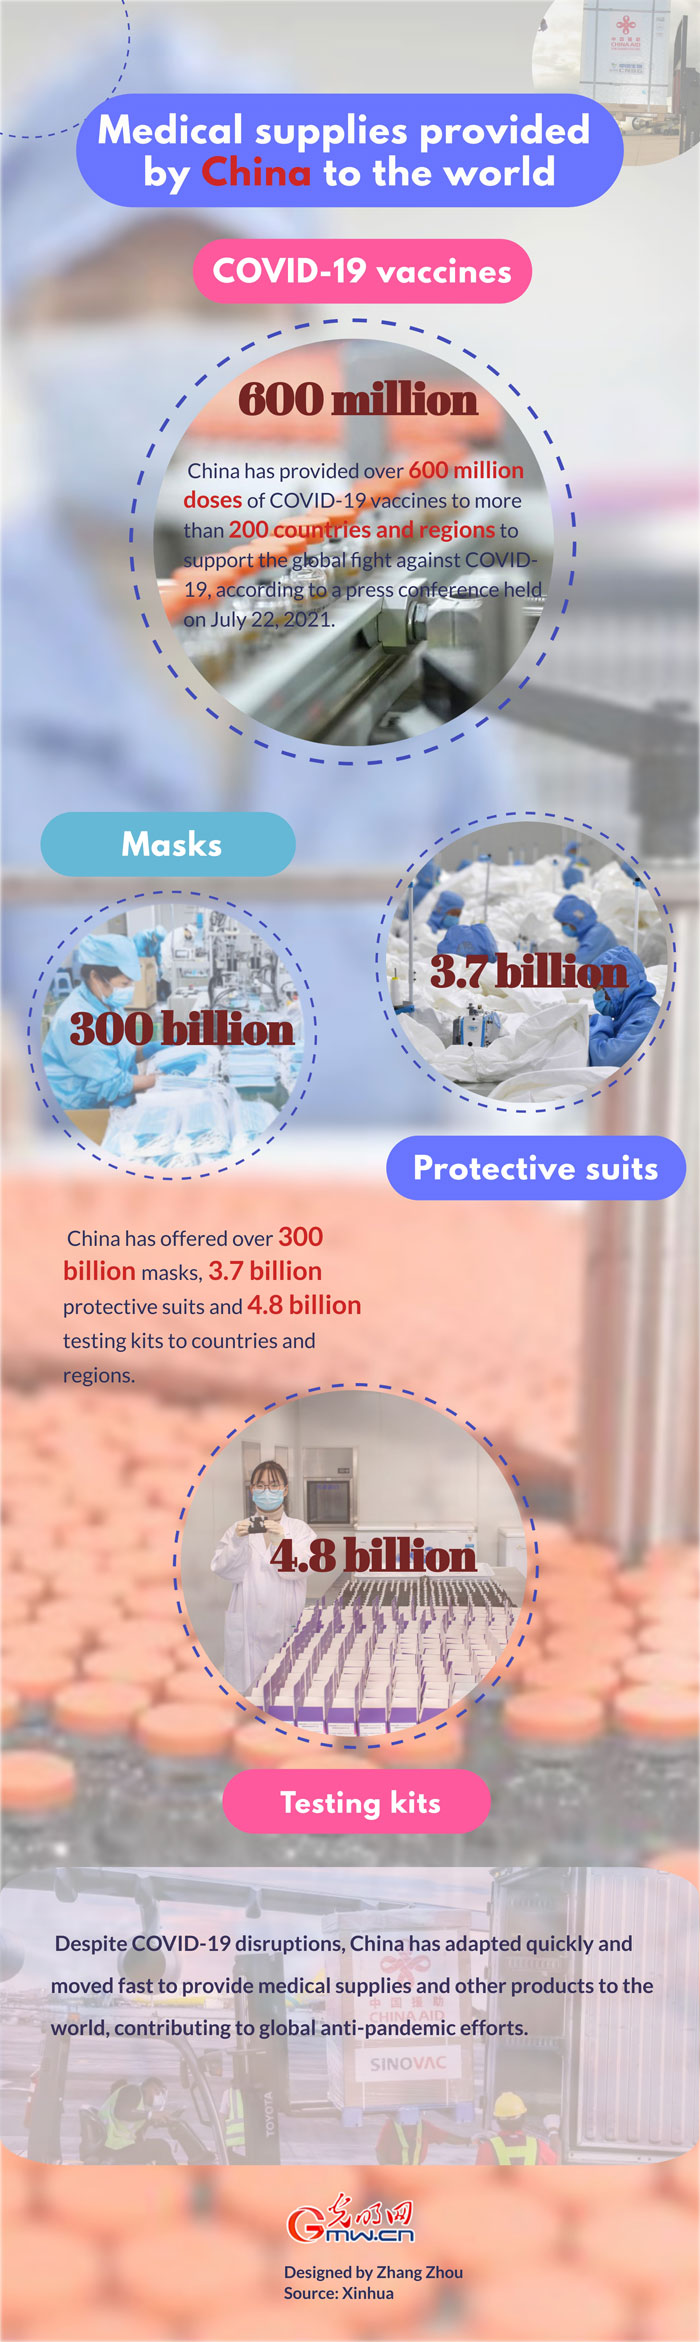 Infographic: Medical supplies provided by China to the world